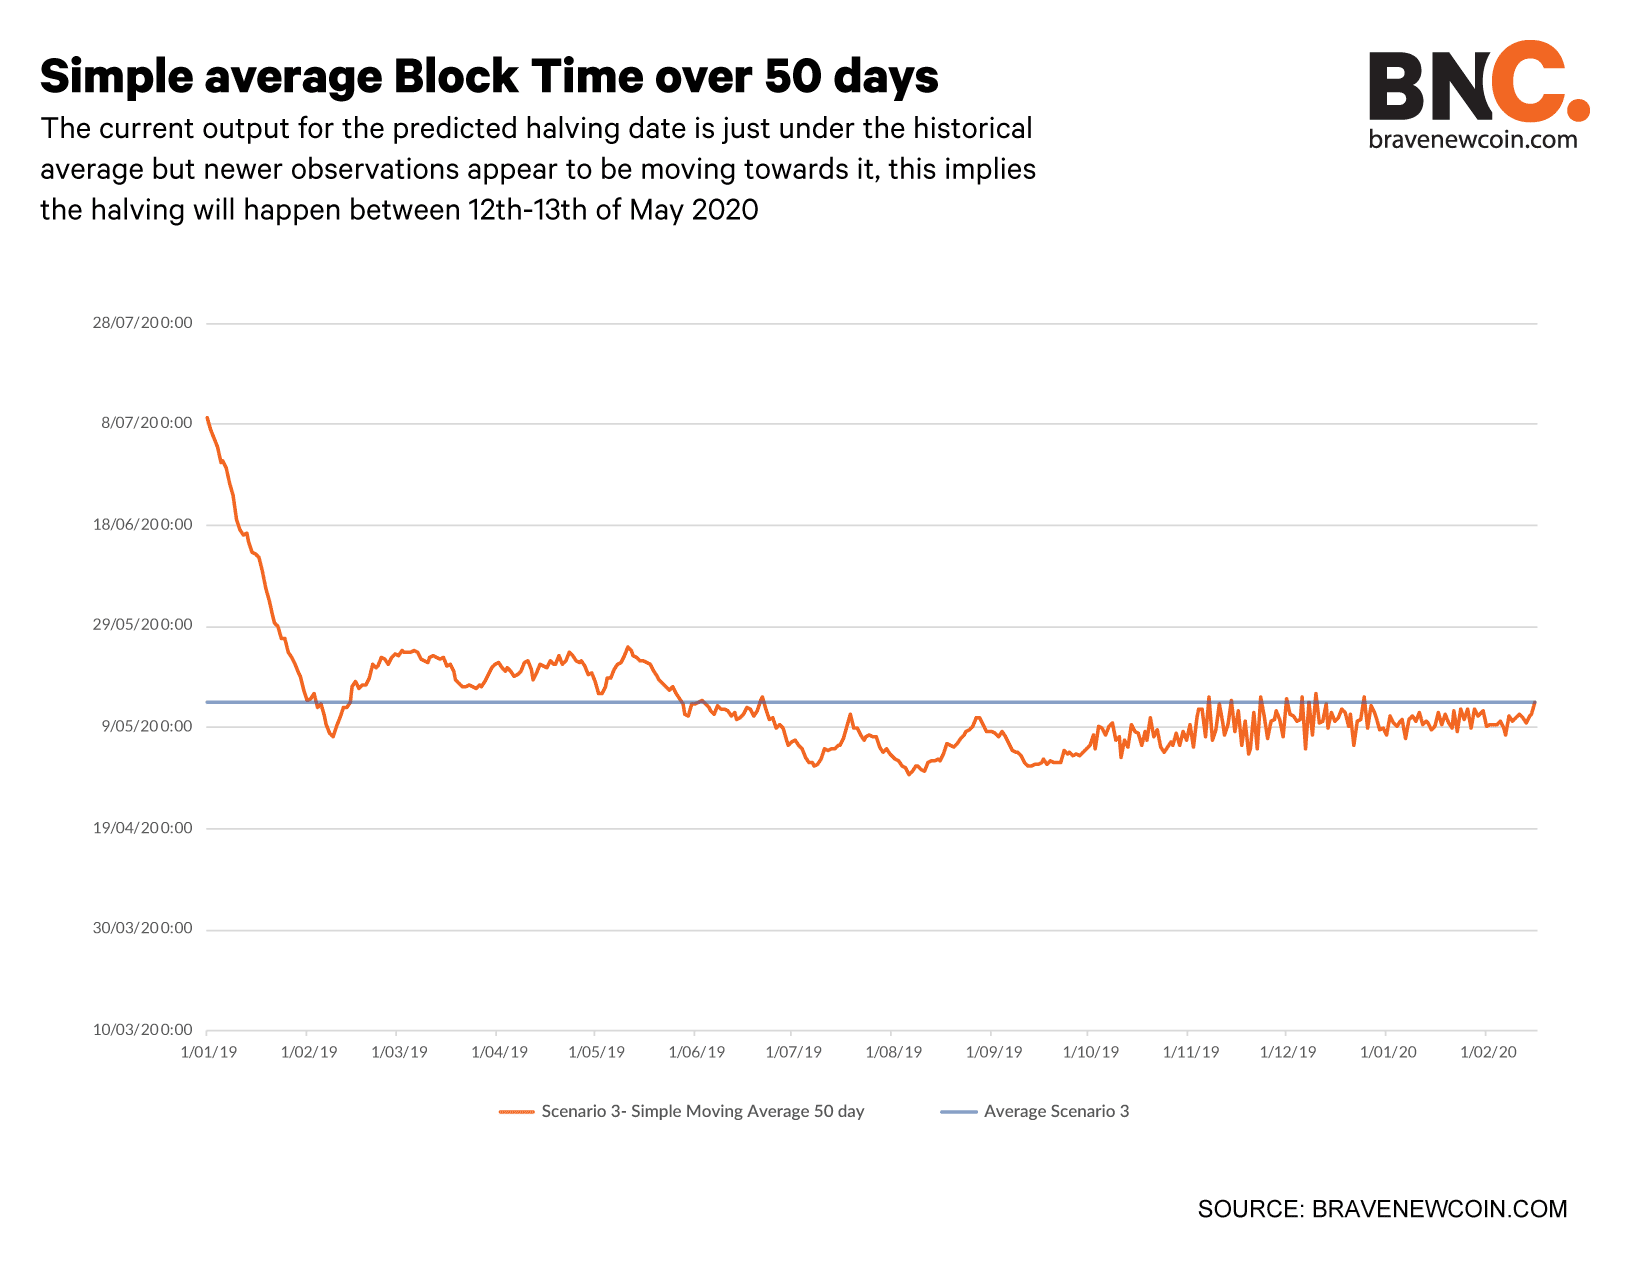 Simple-average-block-time-over-50-days-subheading